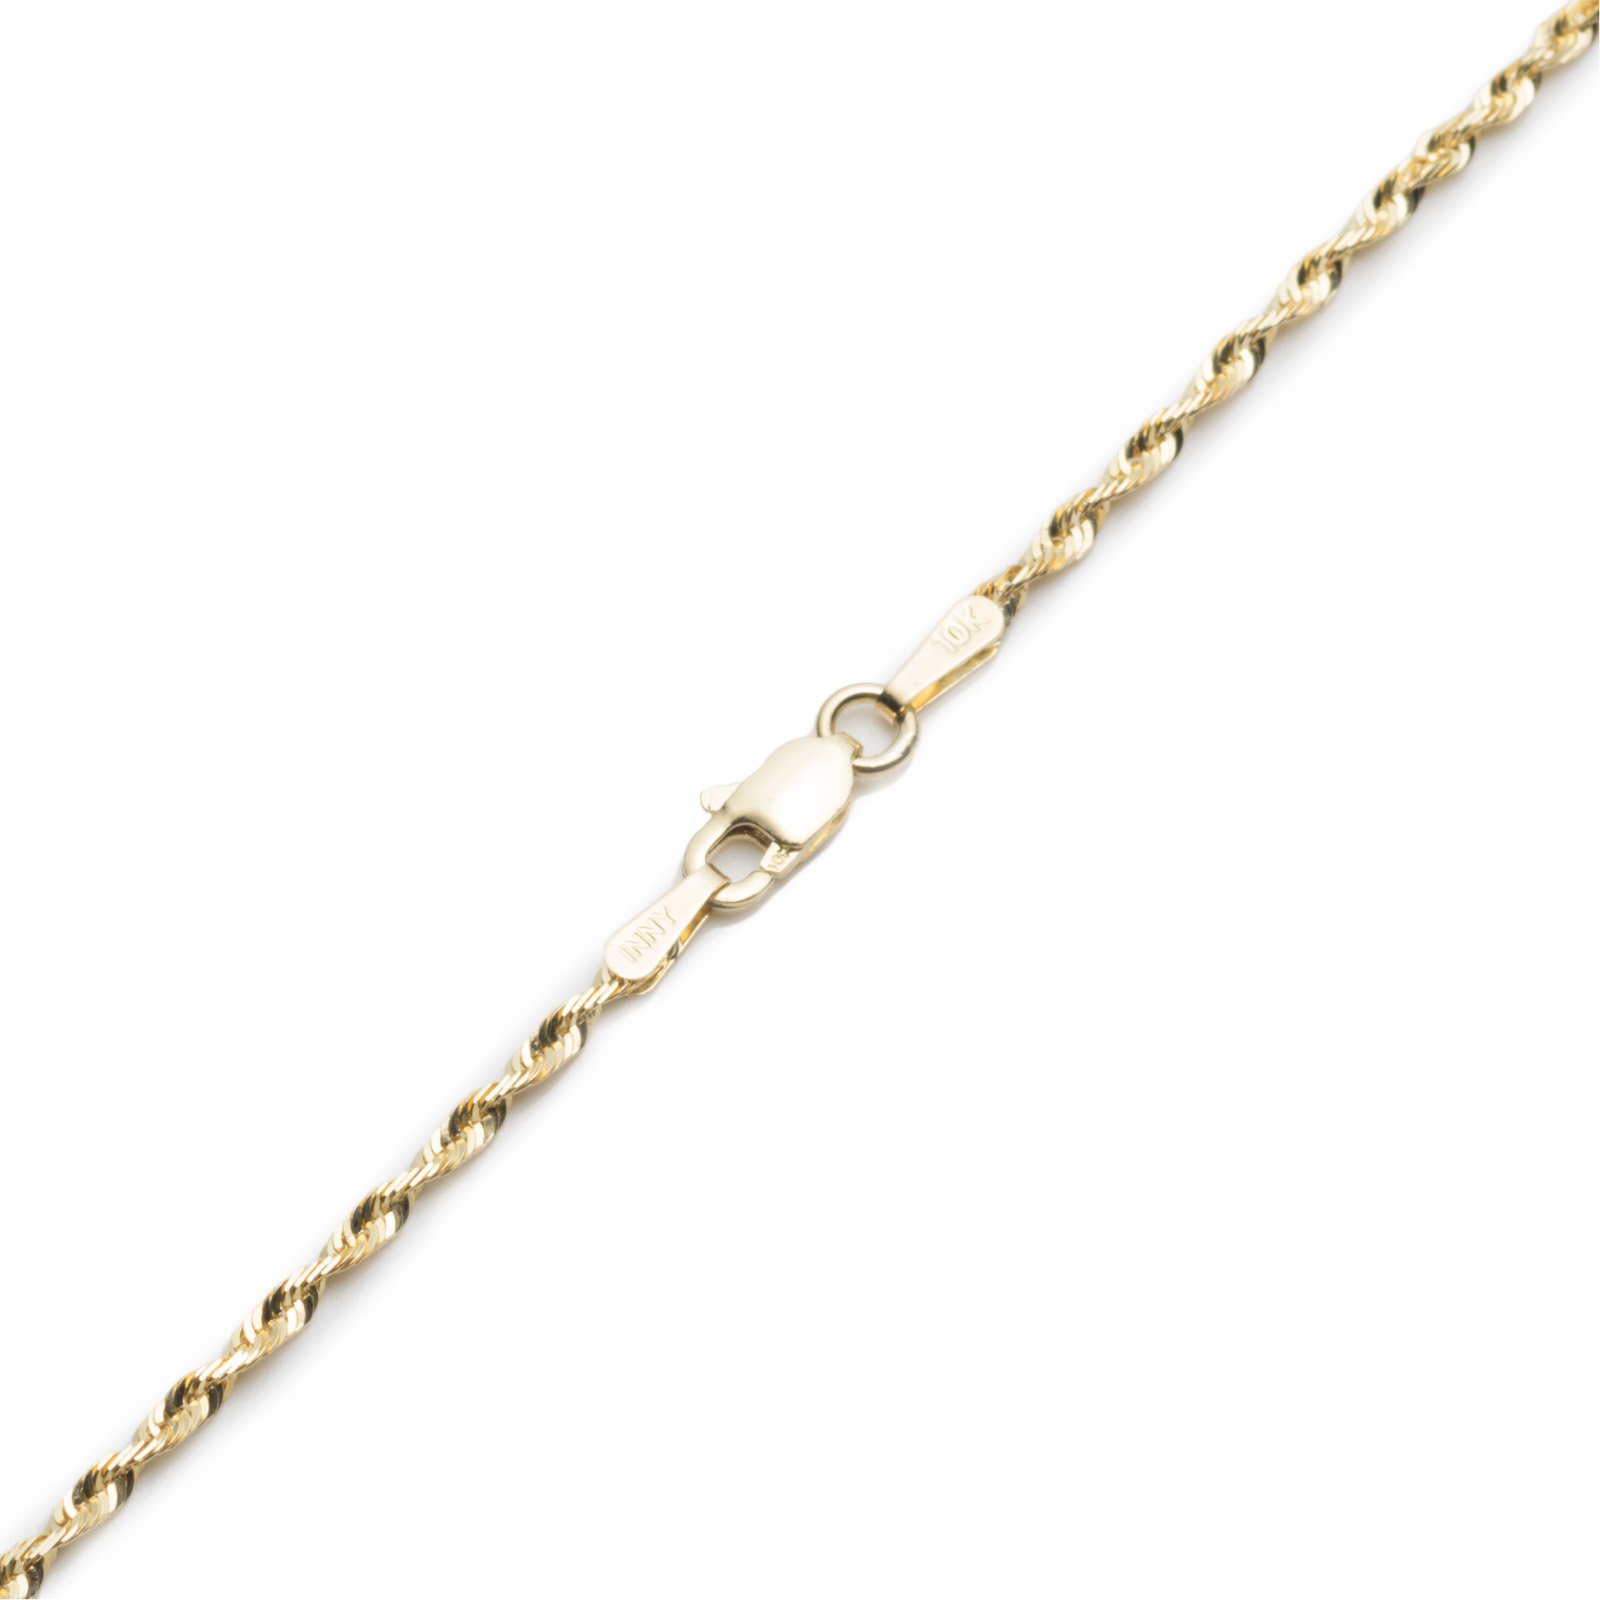 9 Inch 10k Yellow Gold Solid Extra Light Diamond Cut Rope Chain Bracelet and Anklet, 2mm by SL Chain Collection (Image #3)